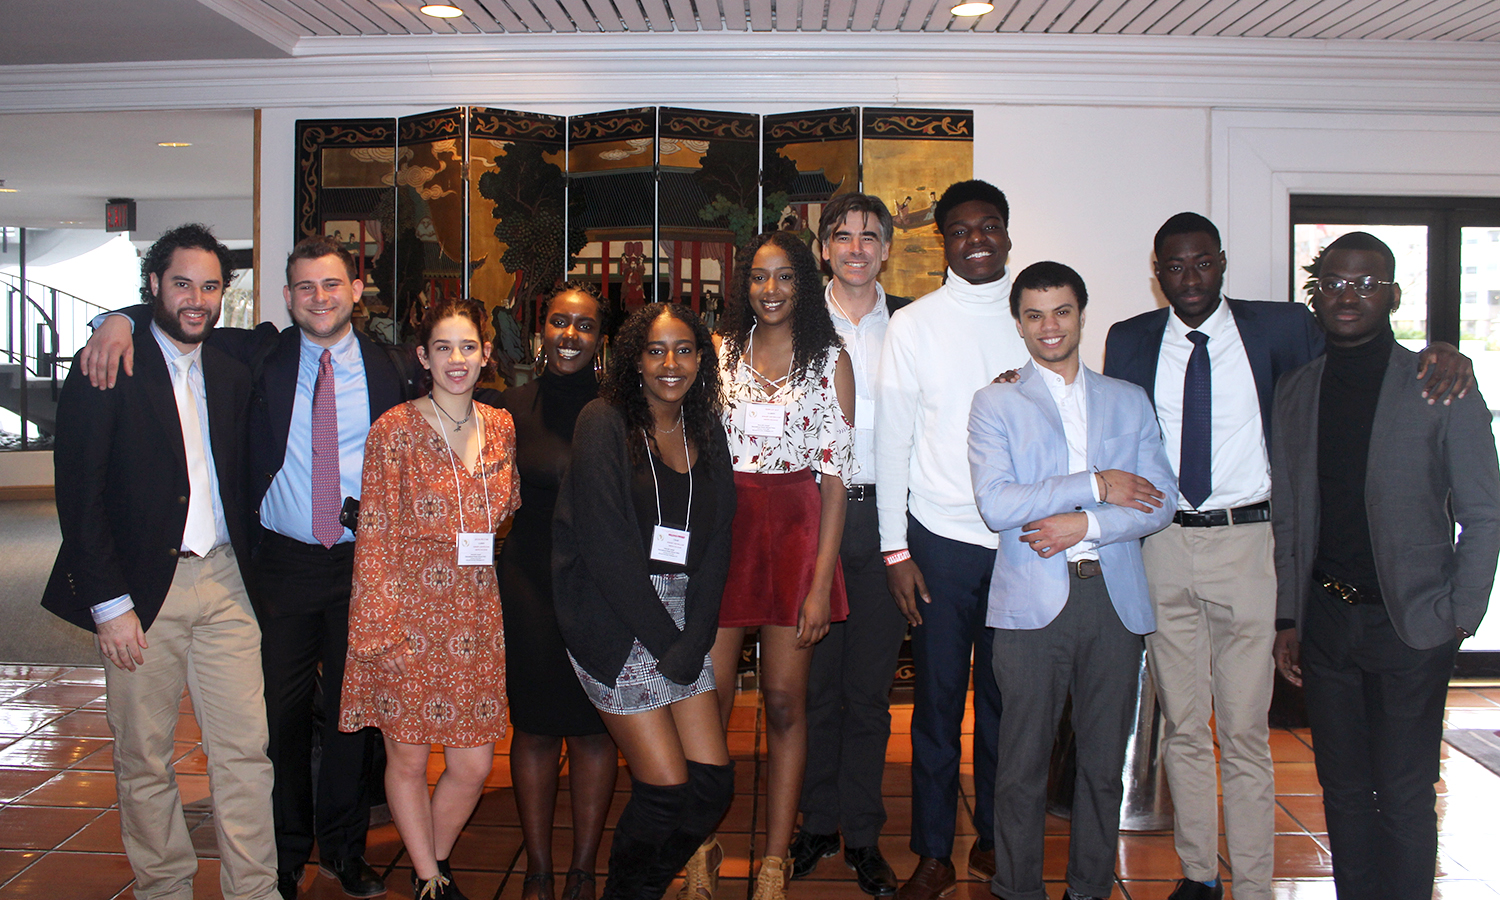 The HWS Model African Union gathers for a photo with Associate Professor of Sociology Christopher Annear (center) after participating in the 2018 International Model African Union Conference at Howard University.